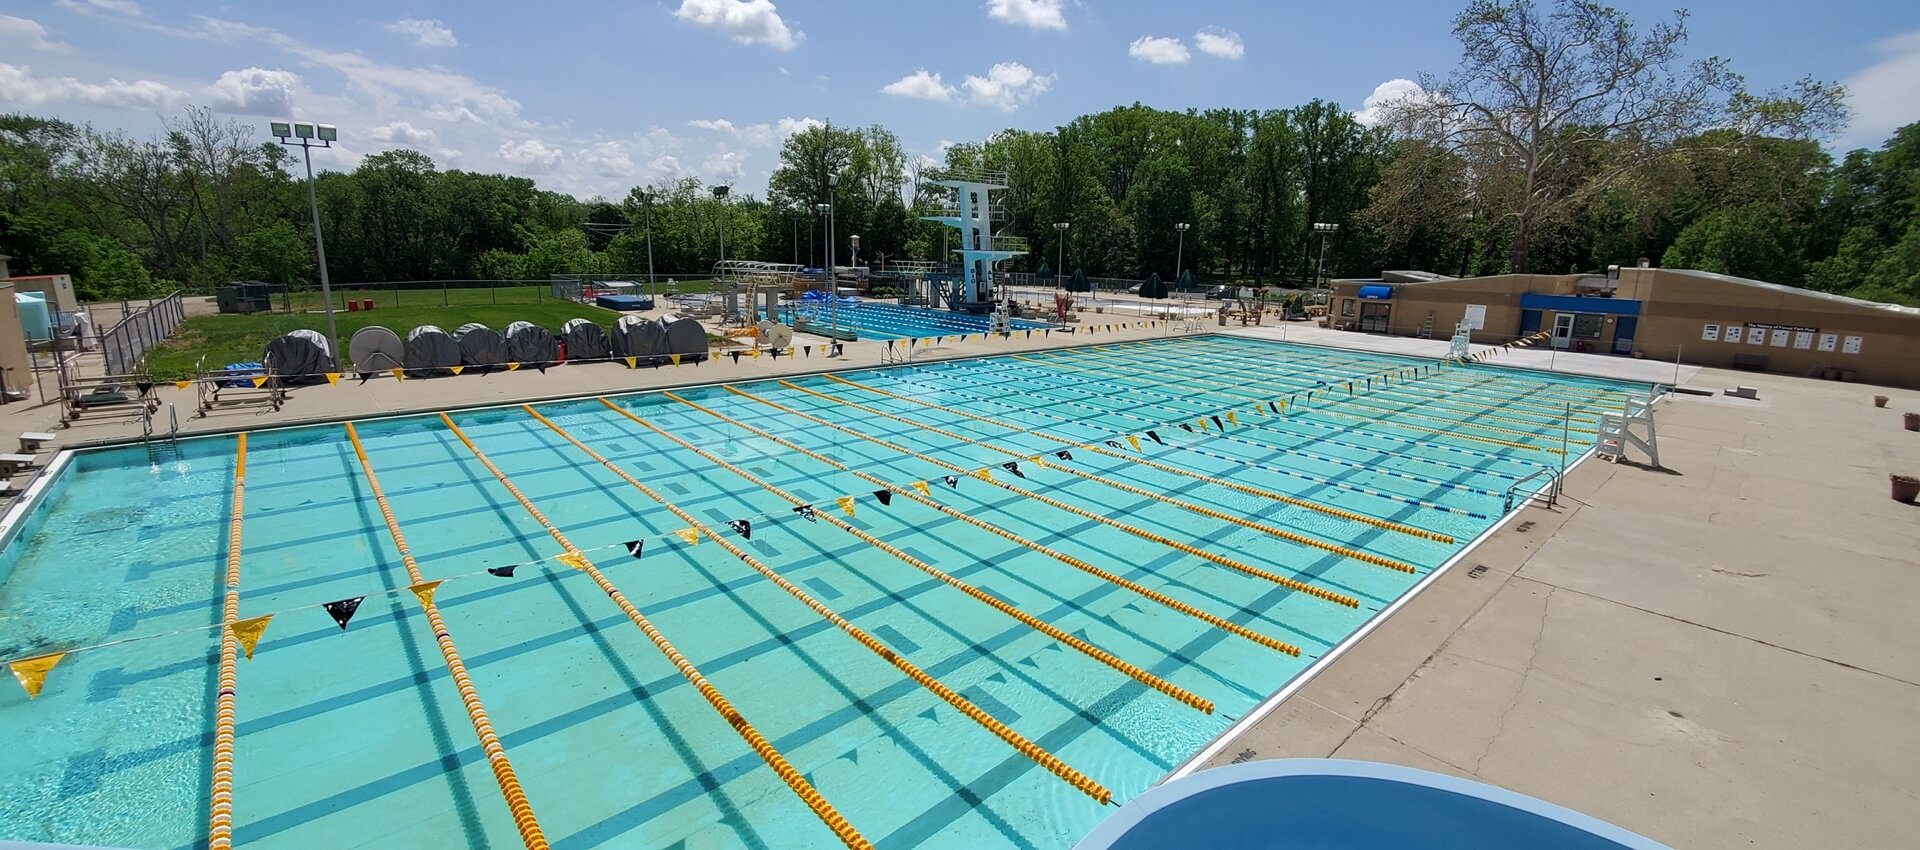 Forest Park Aquatic Center